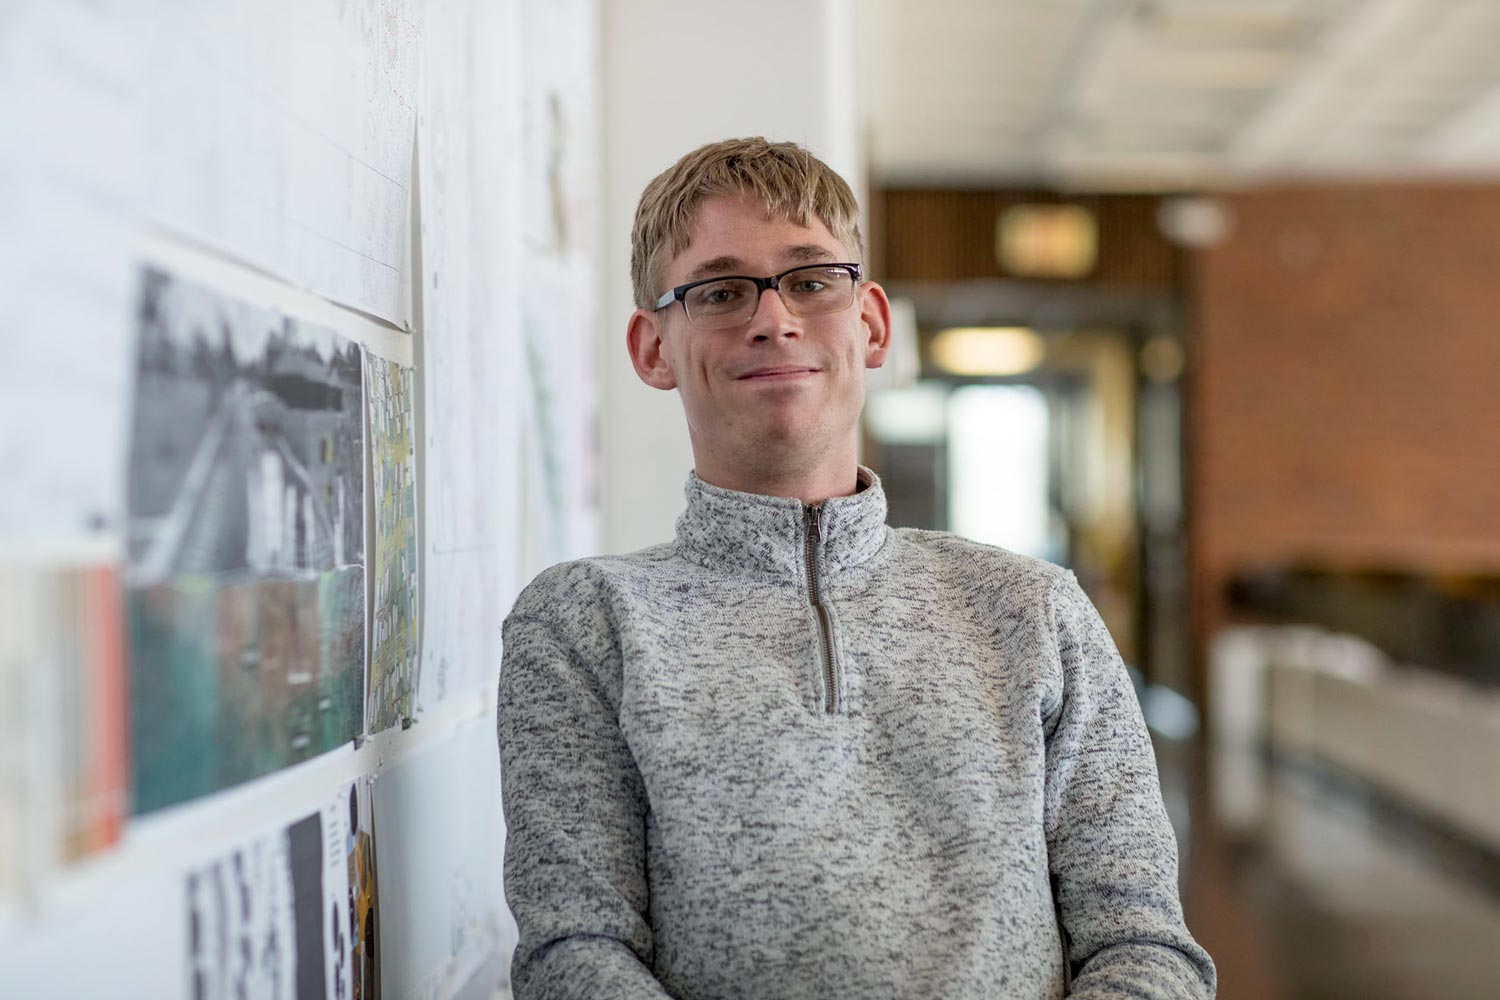 Cory Paradis devoted much of his studies to issues surrounding the Americans With Disabilities Act and concerns about accessibility.